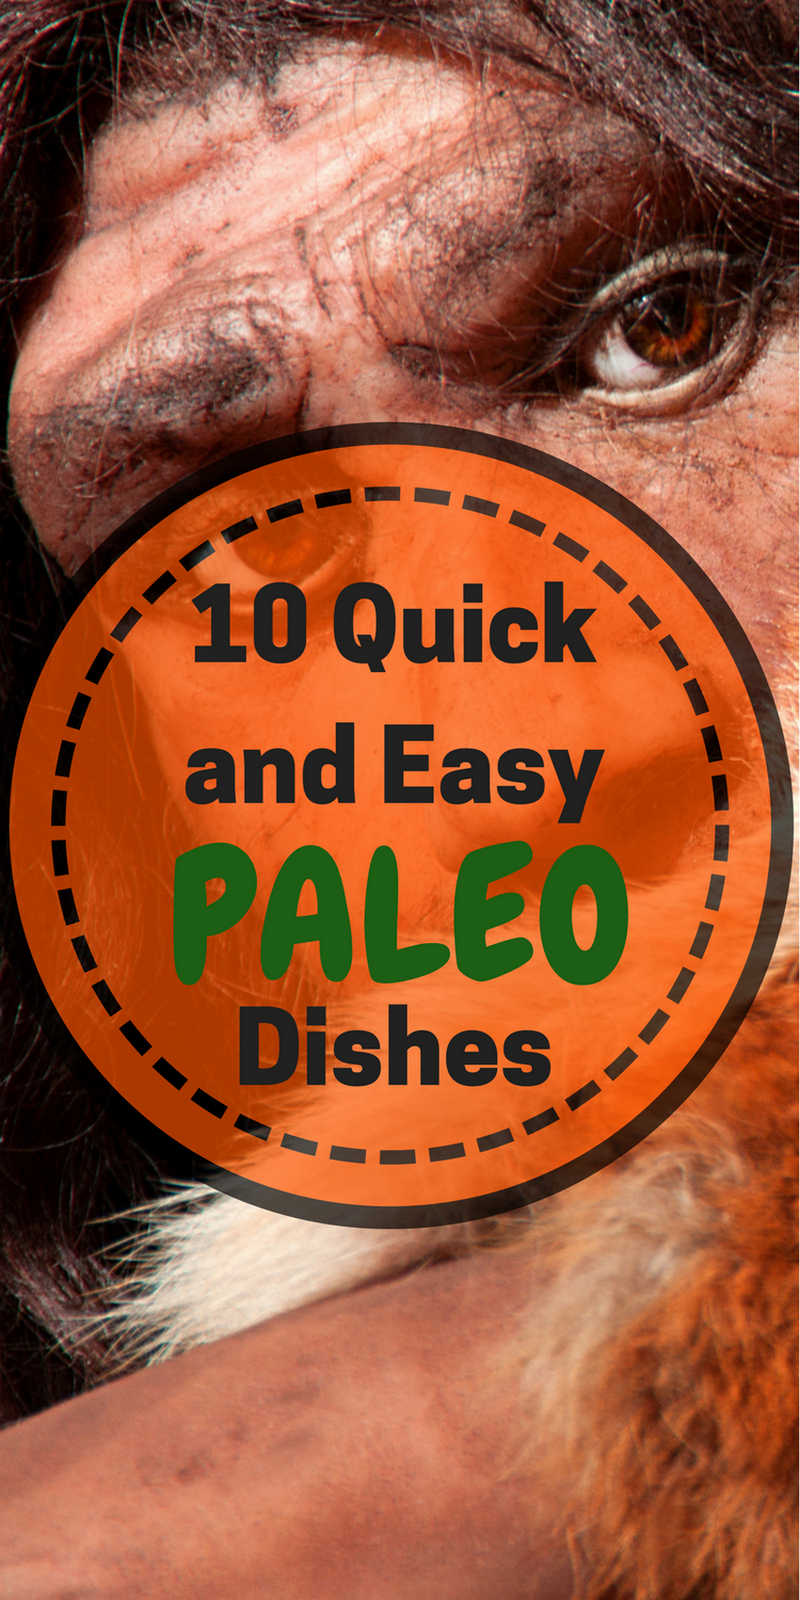 10 Quick and Easy Paleo Diet Recipes | 10 Quick and Easy Paleo Dishes | Recipes | Weight Loss Food | Weight Loss Recipes | Healthy Meals | Weight Loss Snack Recipes | Weight Loss Dinner Recipes | Weight Loss Dessert Recipes | Weight Loss Low Carb Recipes | Weight Loss Lunch Recipes | Weight Loss Breakfast Recipes | ARoadtoTravel.com